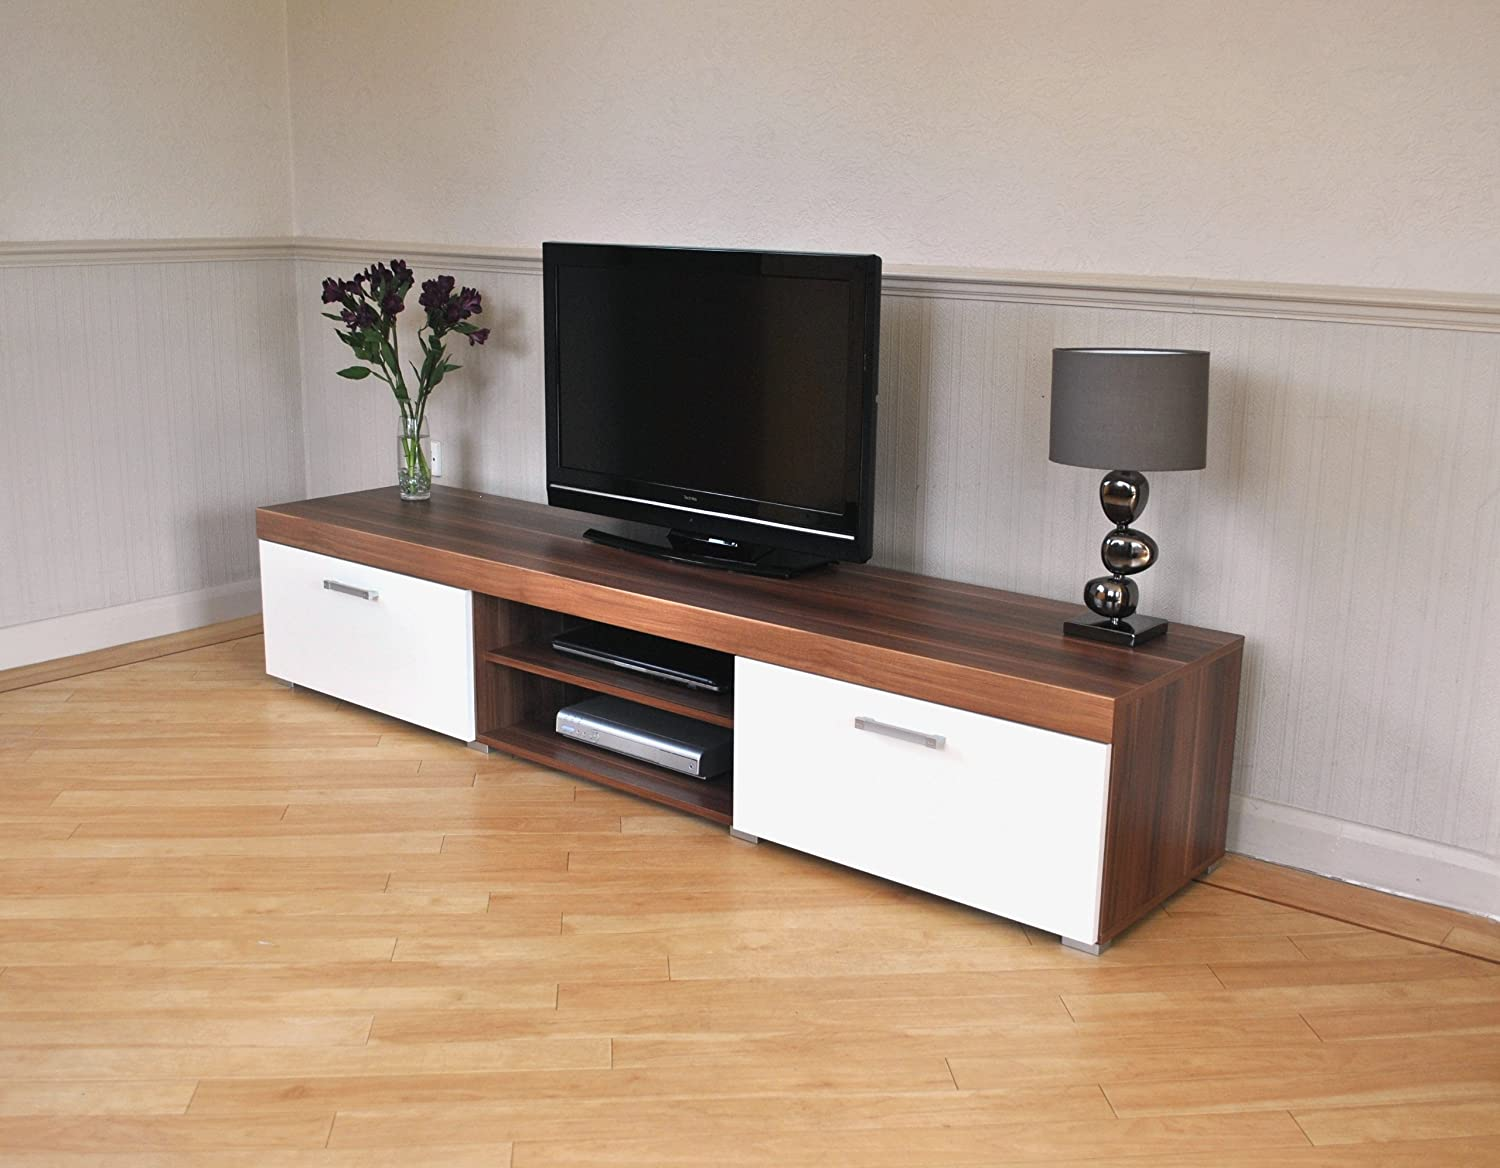 tv cabinet pictures living room. Black Bedroom Furniture Sets. Home Design Ideas